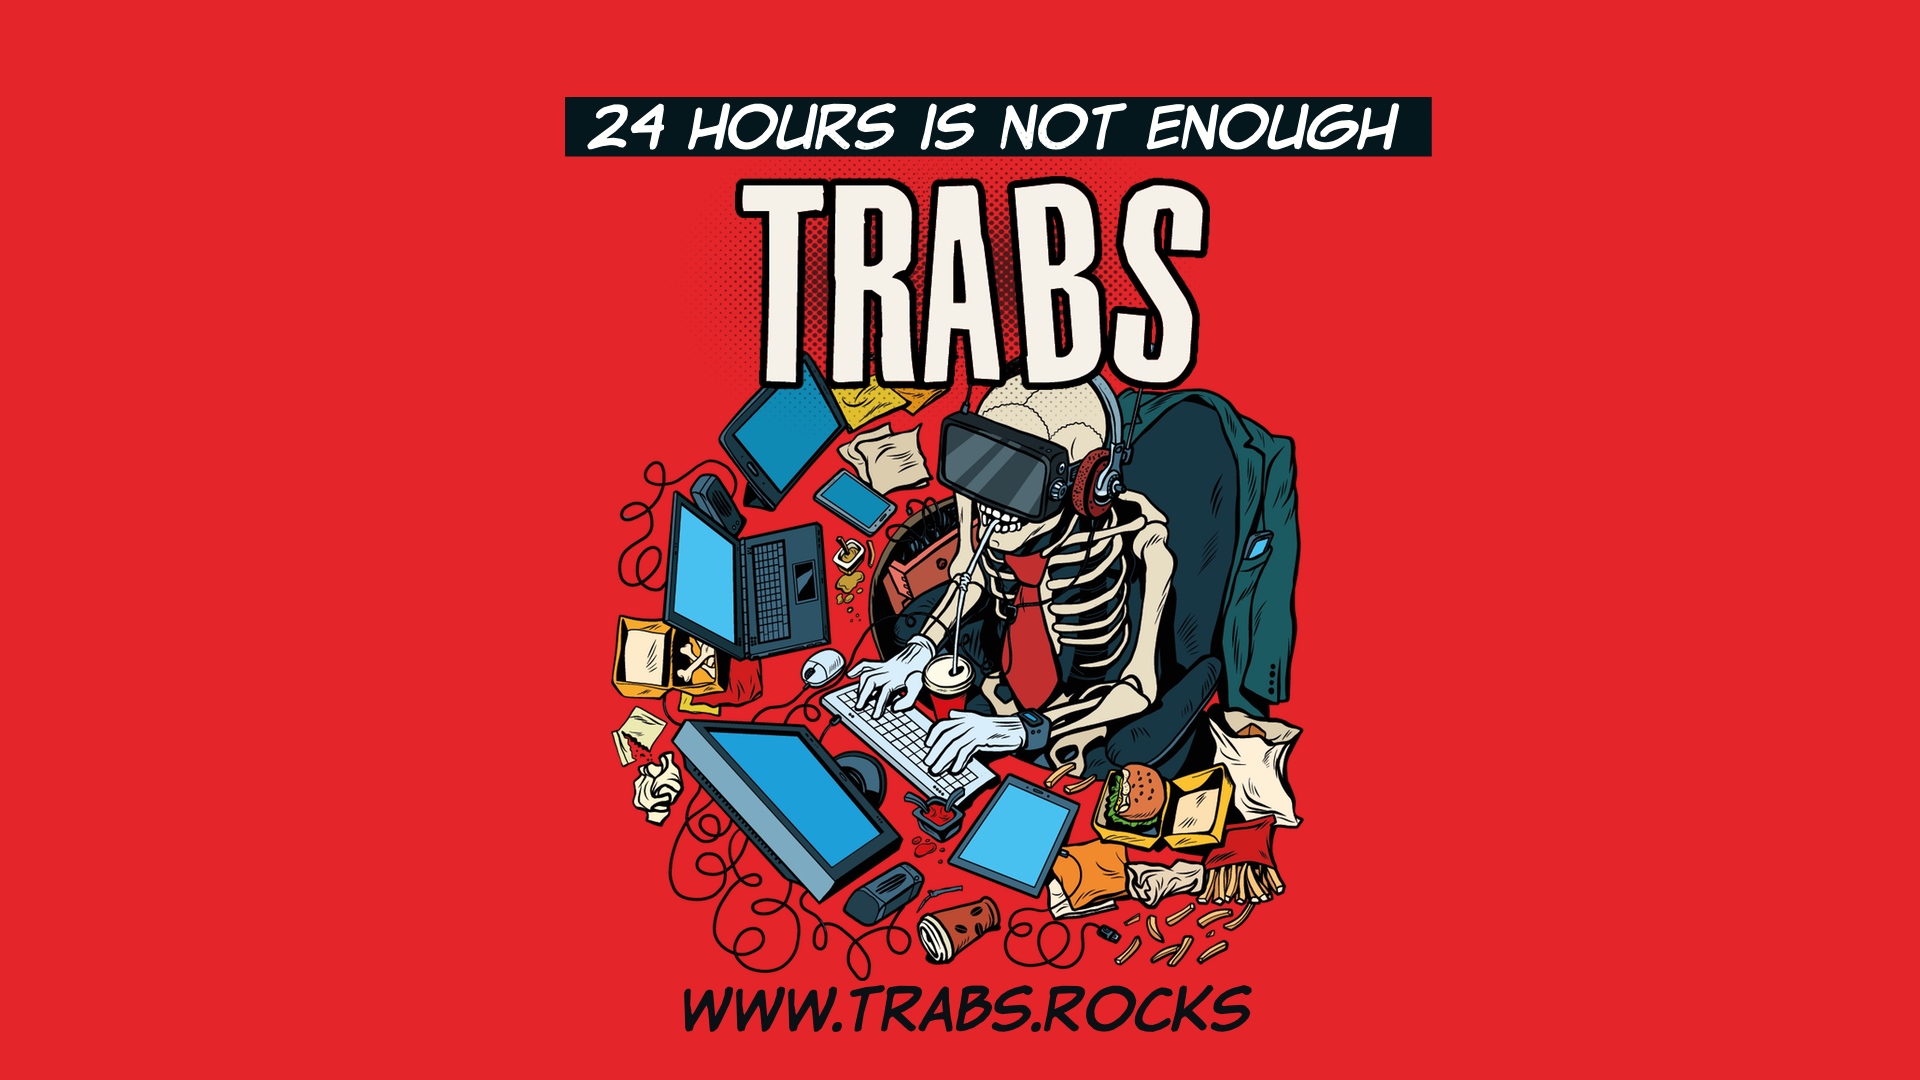 TRABS - 24 hours is not enough - Wallpaper 1920x1080